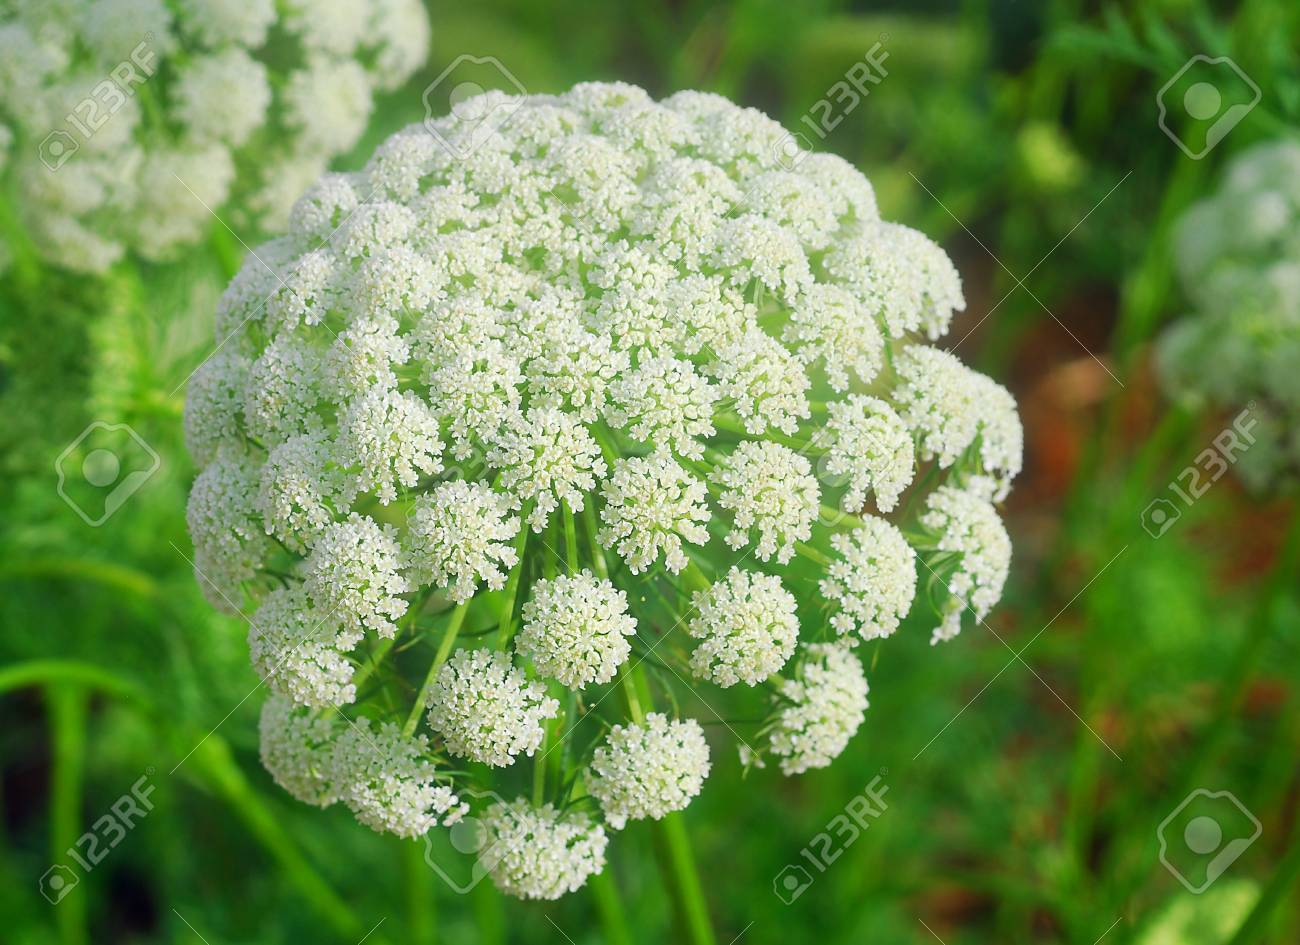 White Onion Flower Cluster In Bloom In Spring Stock Photo Picture